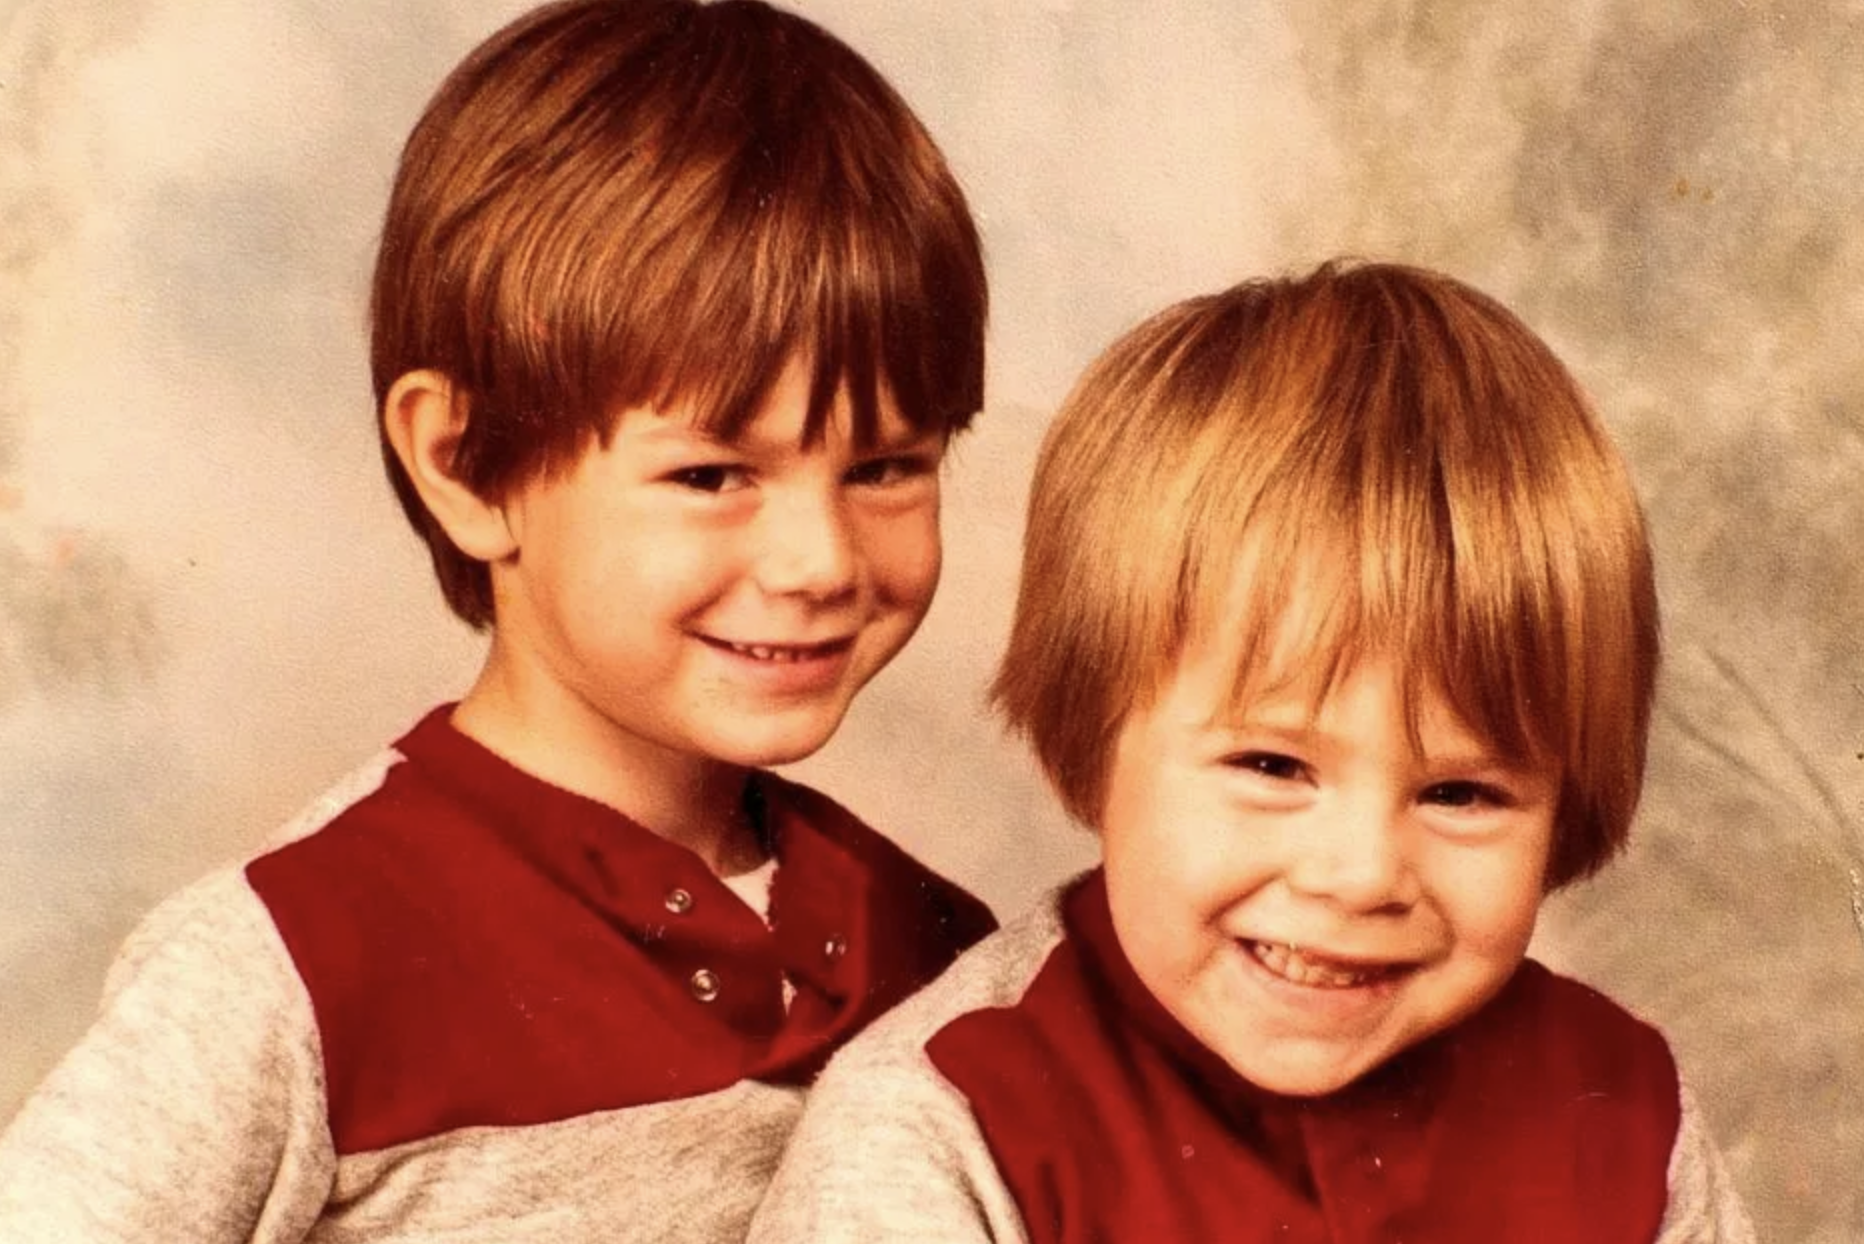 Danny Dyer as a child with his brother, Tony